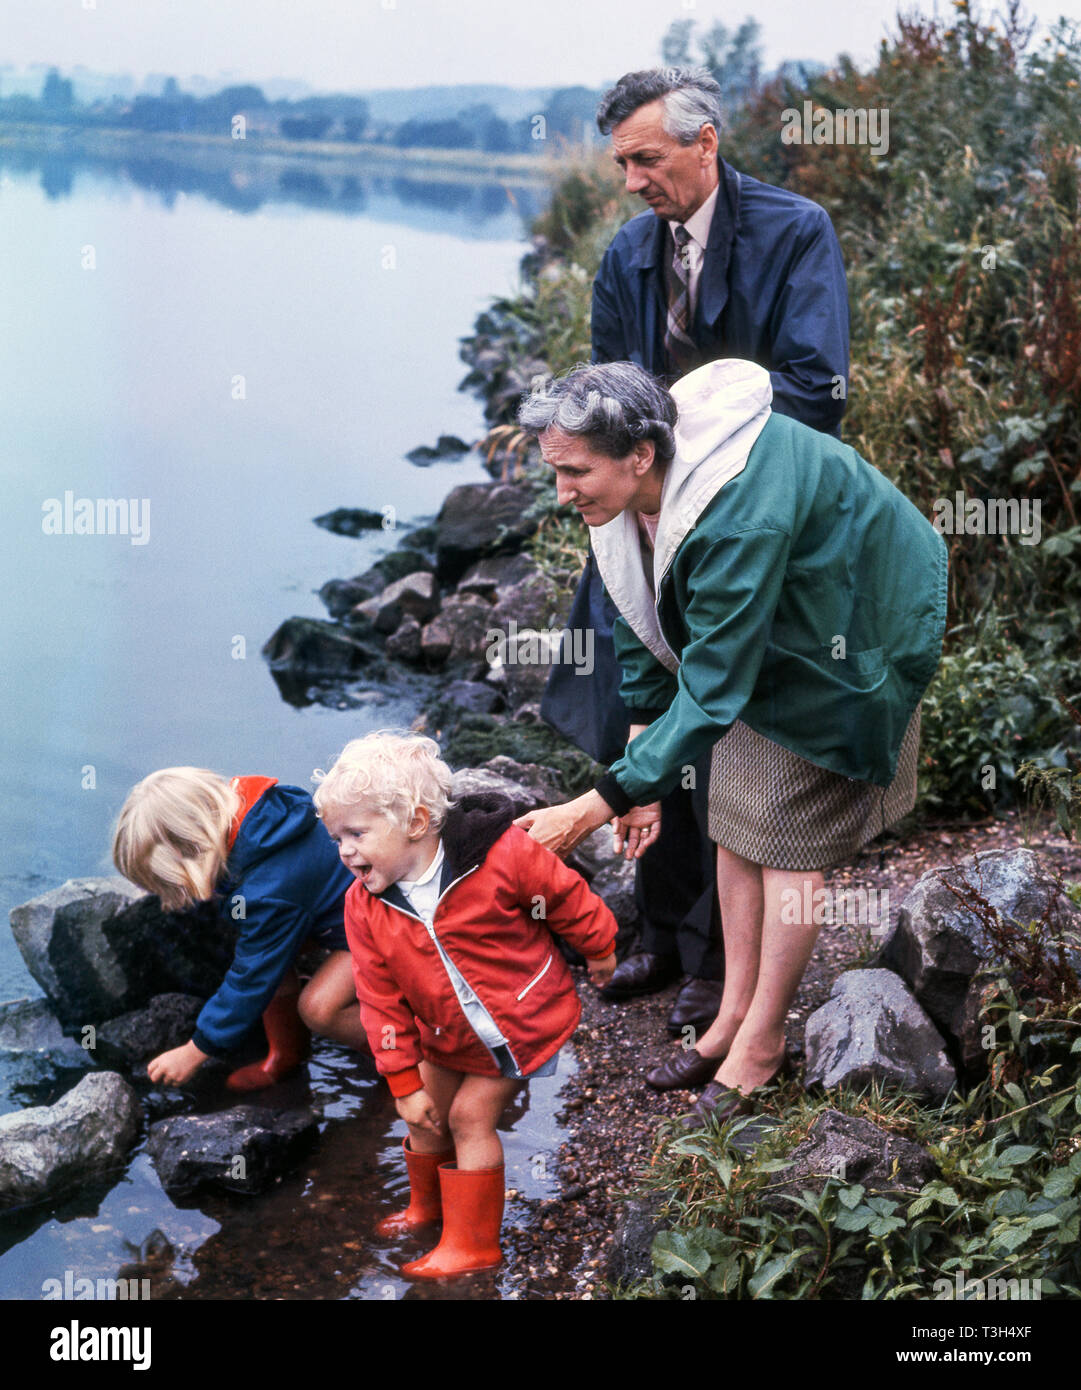 Two young children,with their grandparents,are intrigued by the river.The young boy loves to throw stones into the water. - Stock Image